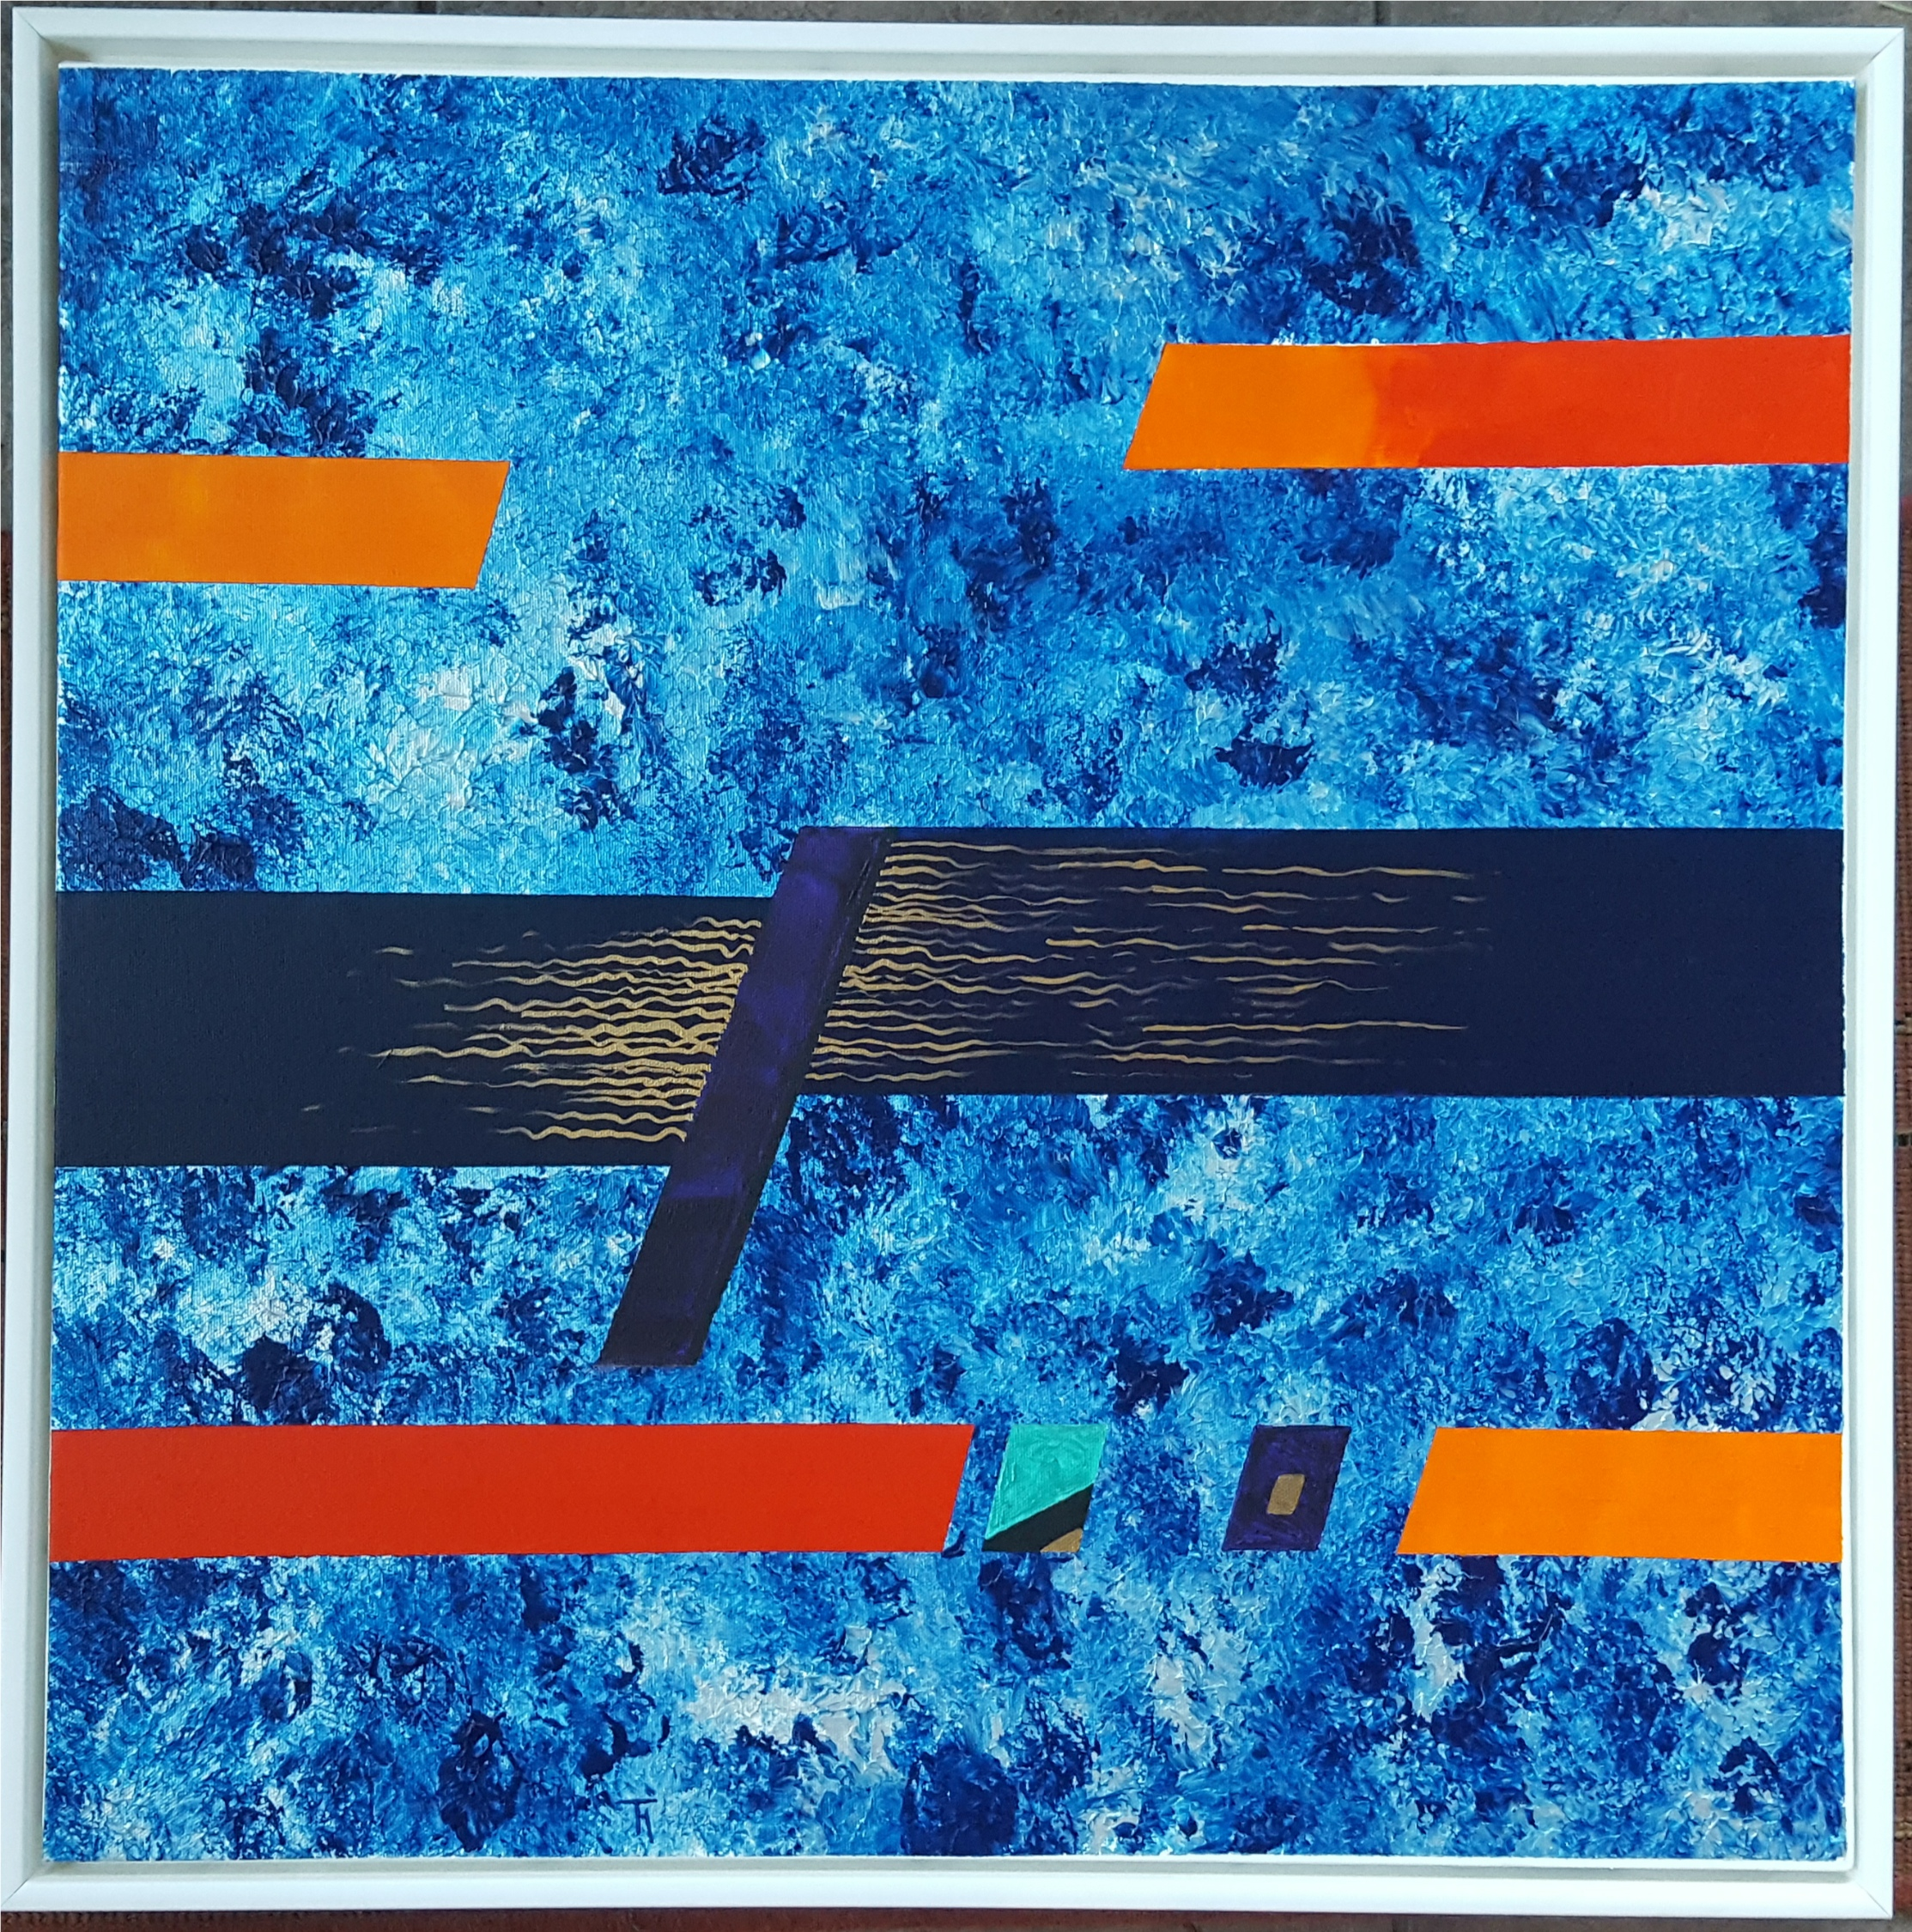 Lot 8 - Collectable Modern Art Acrylic on Canvas Titled Marina by Tom Hackney Signed TH Lower Right